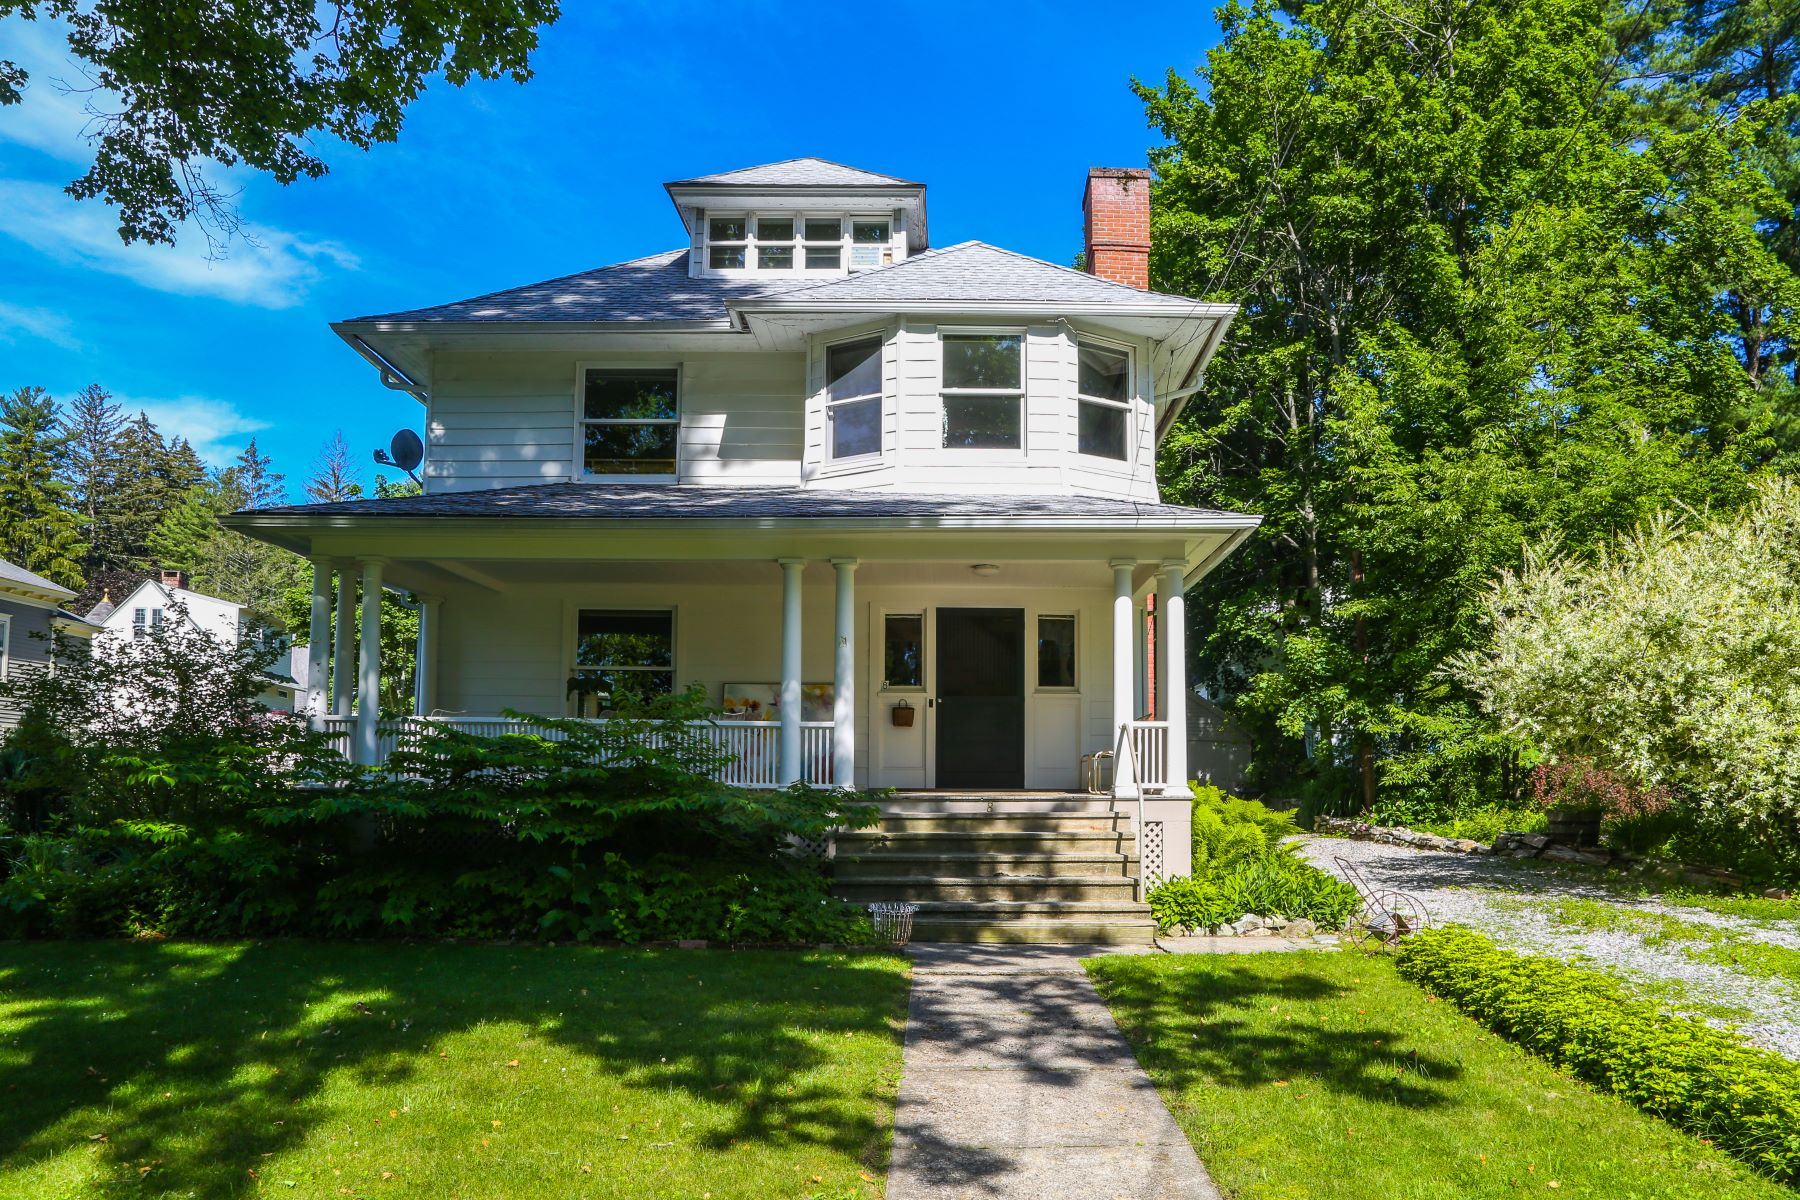 Maison unifamiliale pour l Vente à Beautifully Maintained American Foursquare on The Hill 8 Oak St Great Barrington, Massachusetts 01230 États-Unis